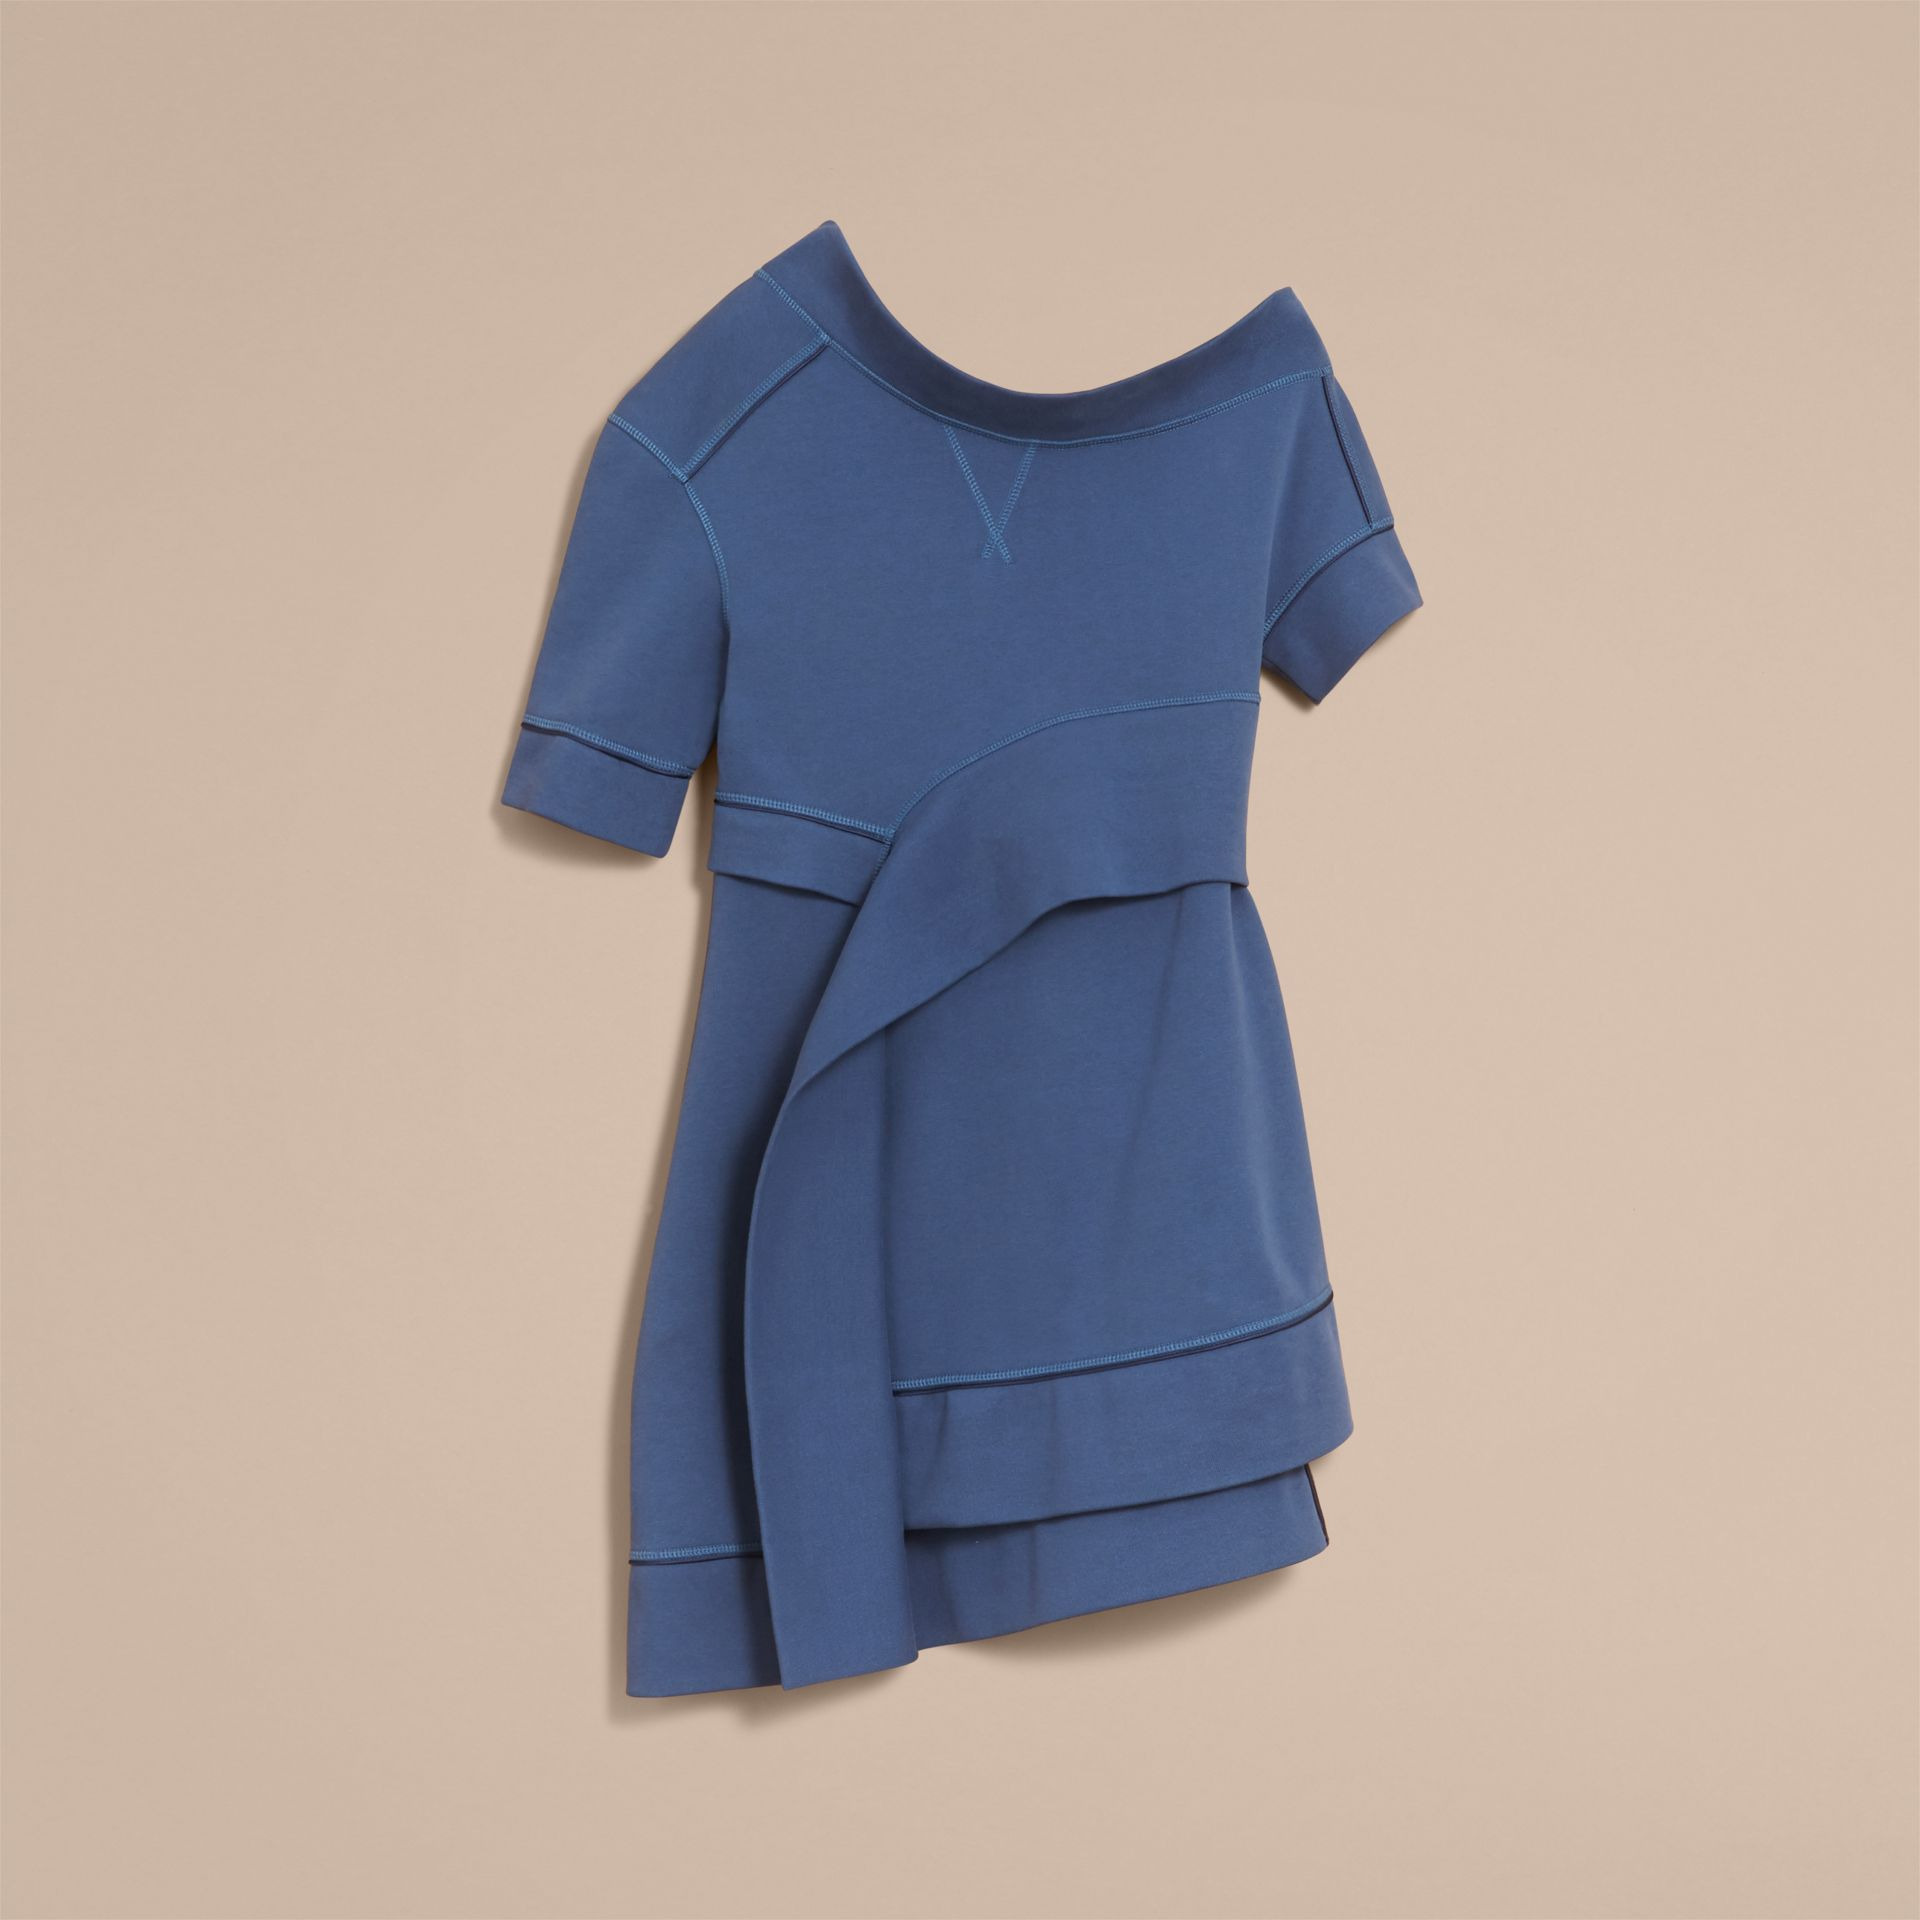 One-shoulder Sweatshirt Dress in Pewter Blue - Women | Burberry Singapore - gallery image 4